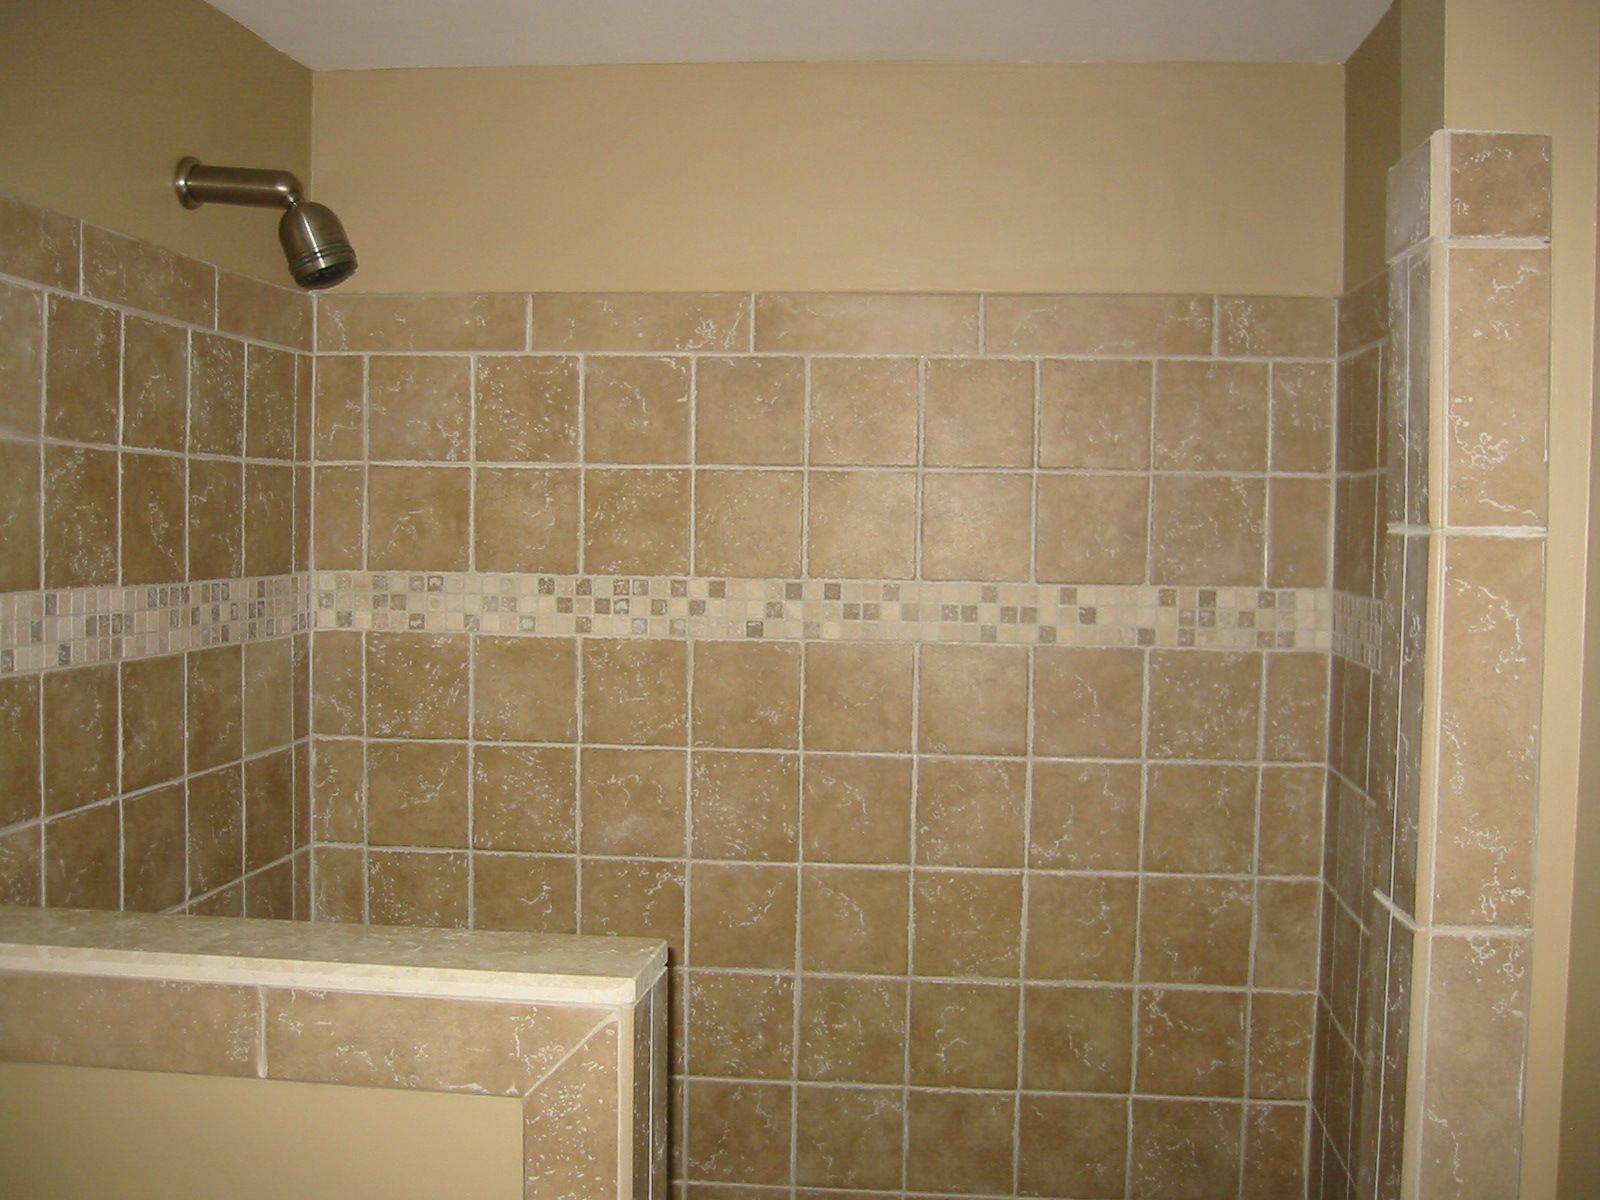 Shower half wall tile bathroom renovations pinterest half walls wall tiles and walls - Small half bathroom tile ideas ...